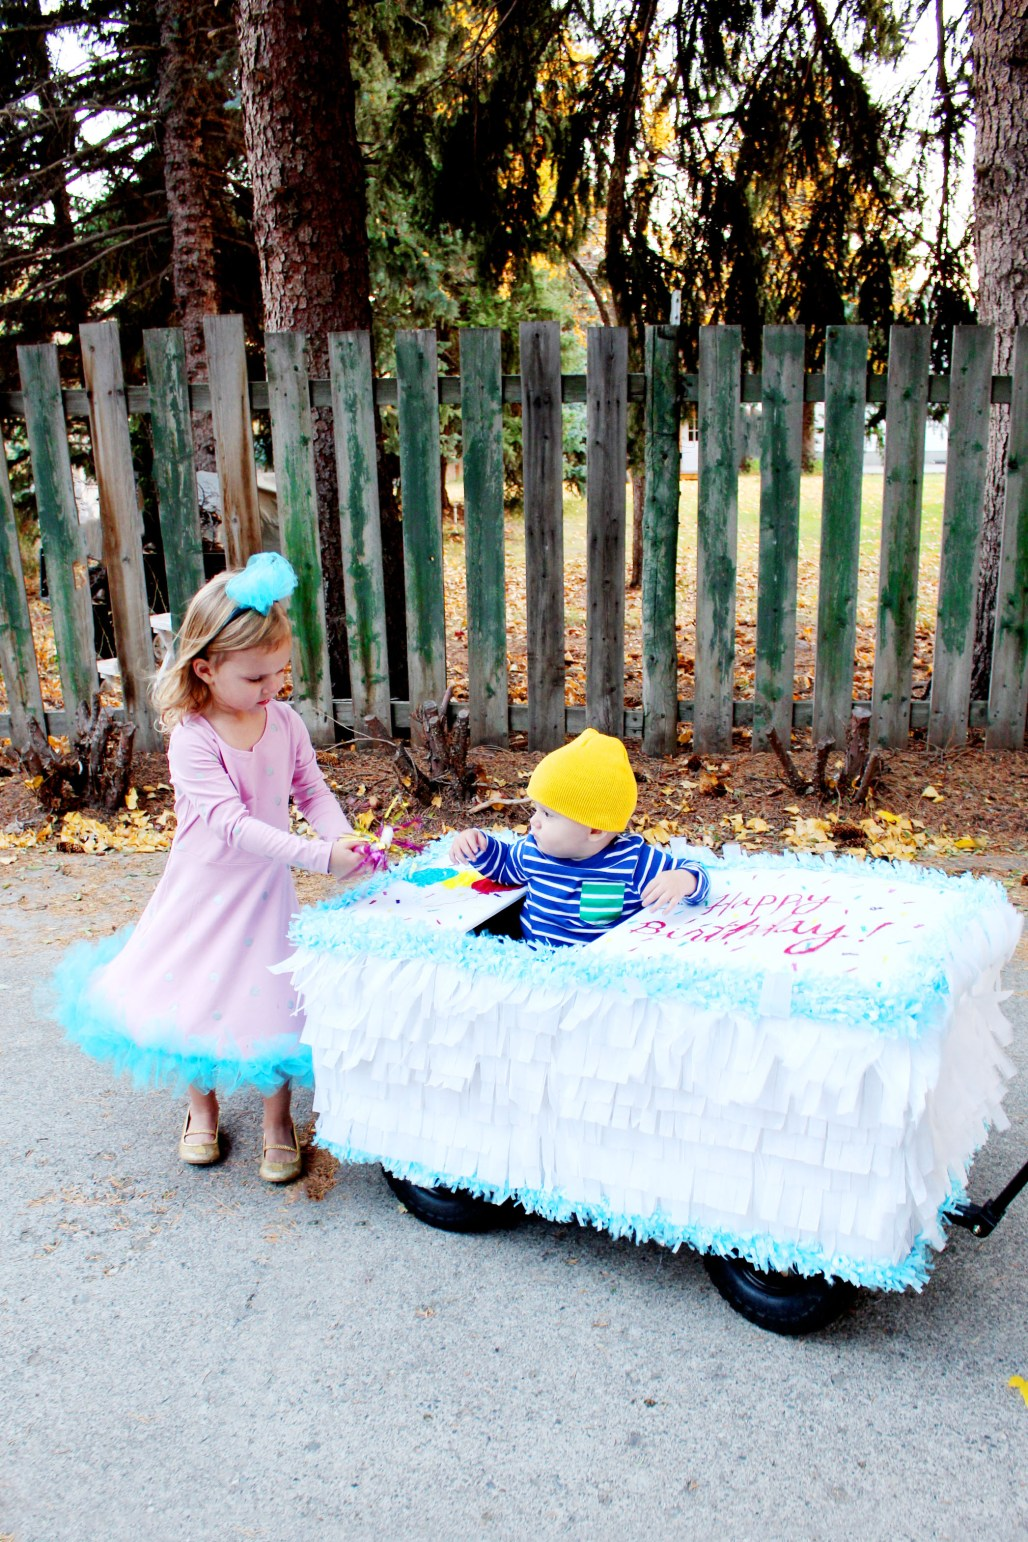 birthday cake costume and party hat costume